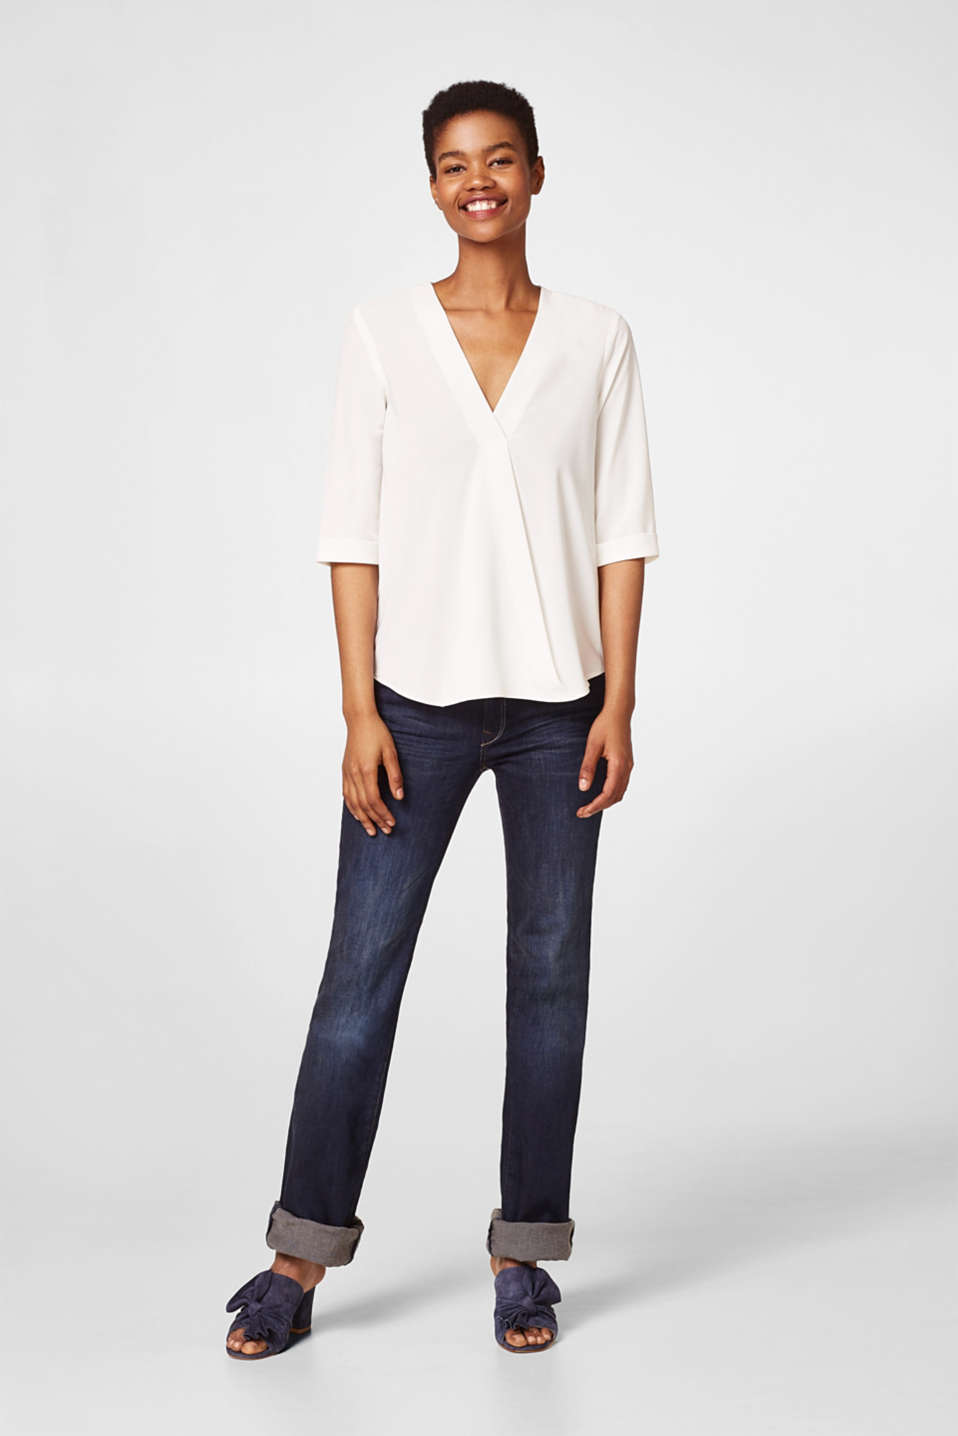 Flowing blouse in a modern wrap-over look